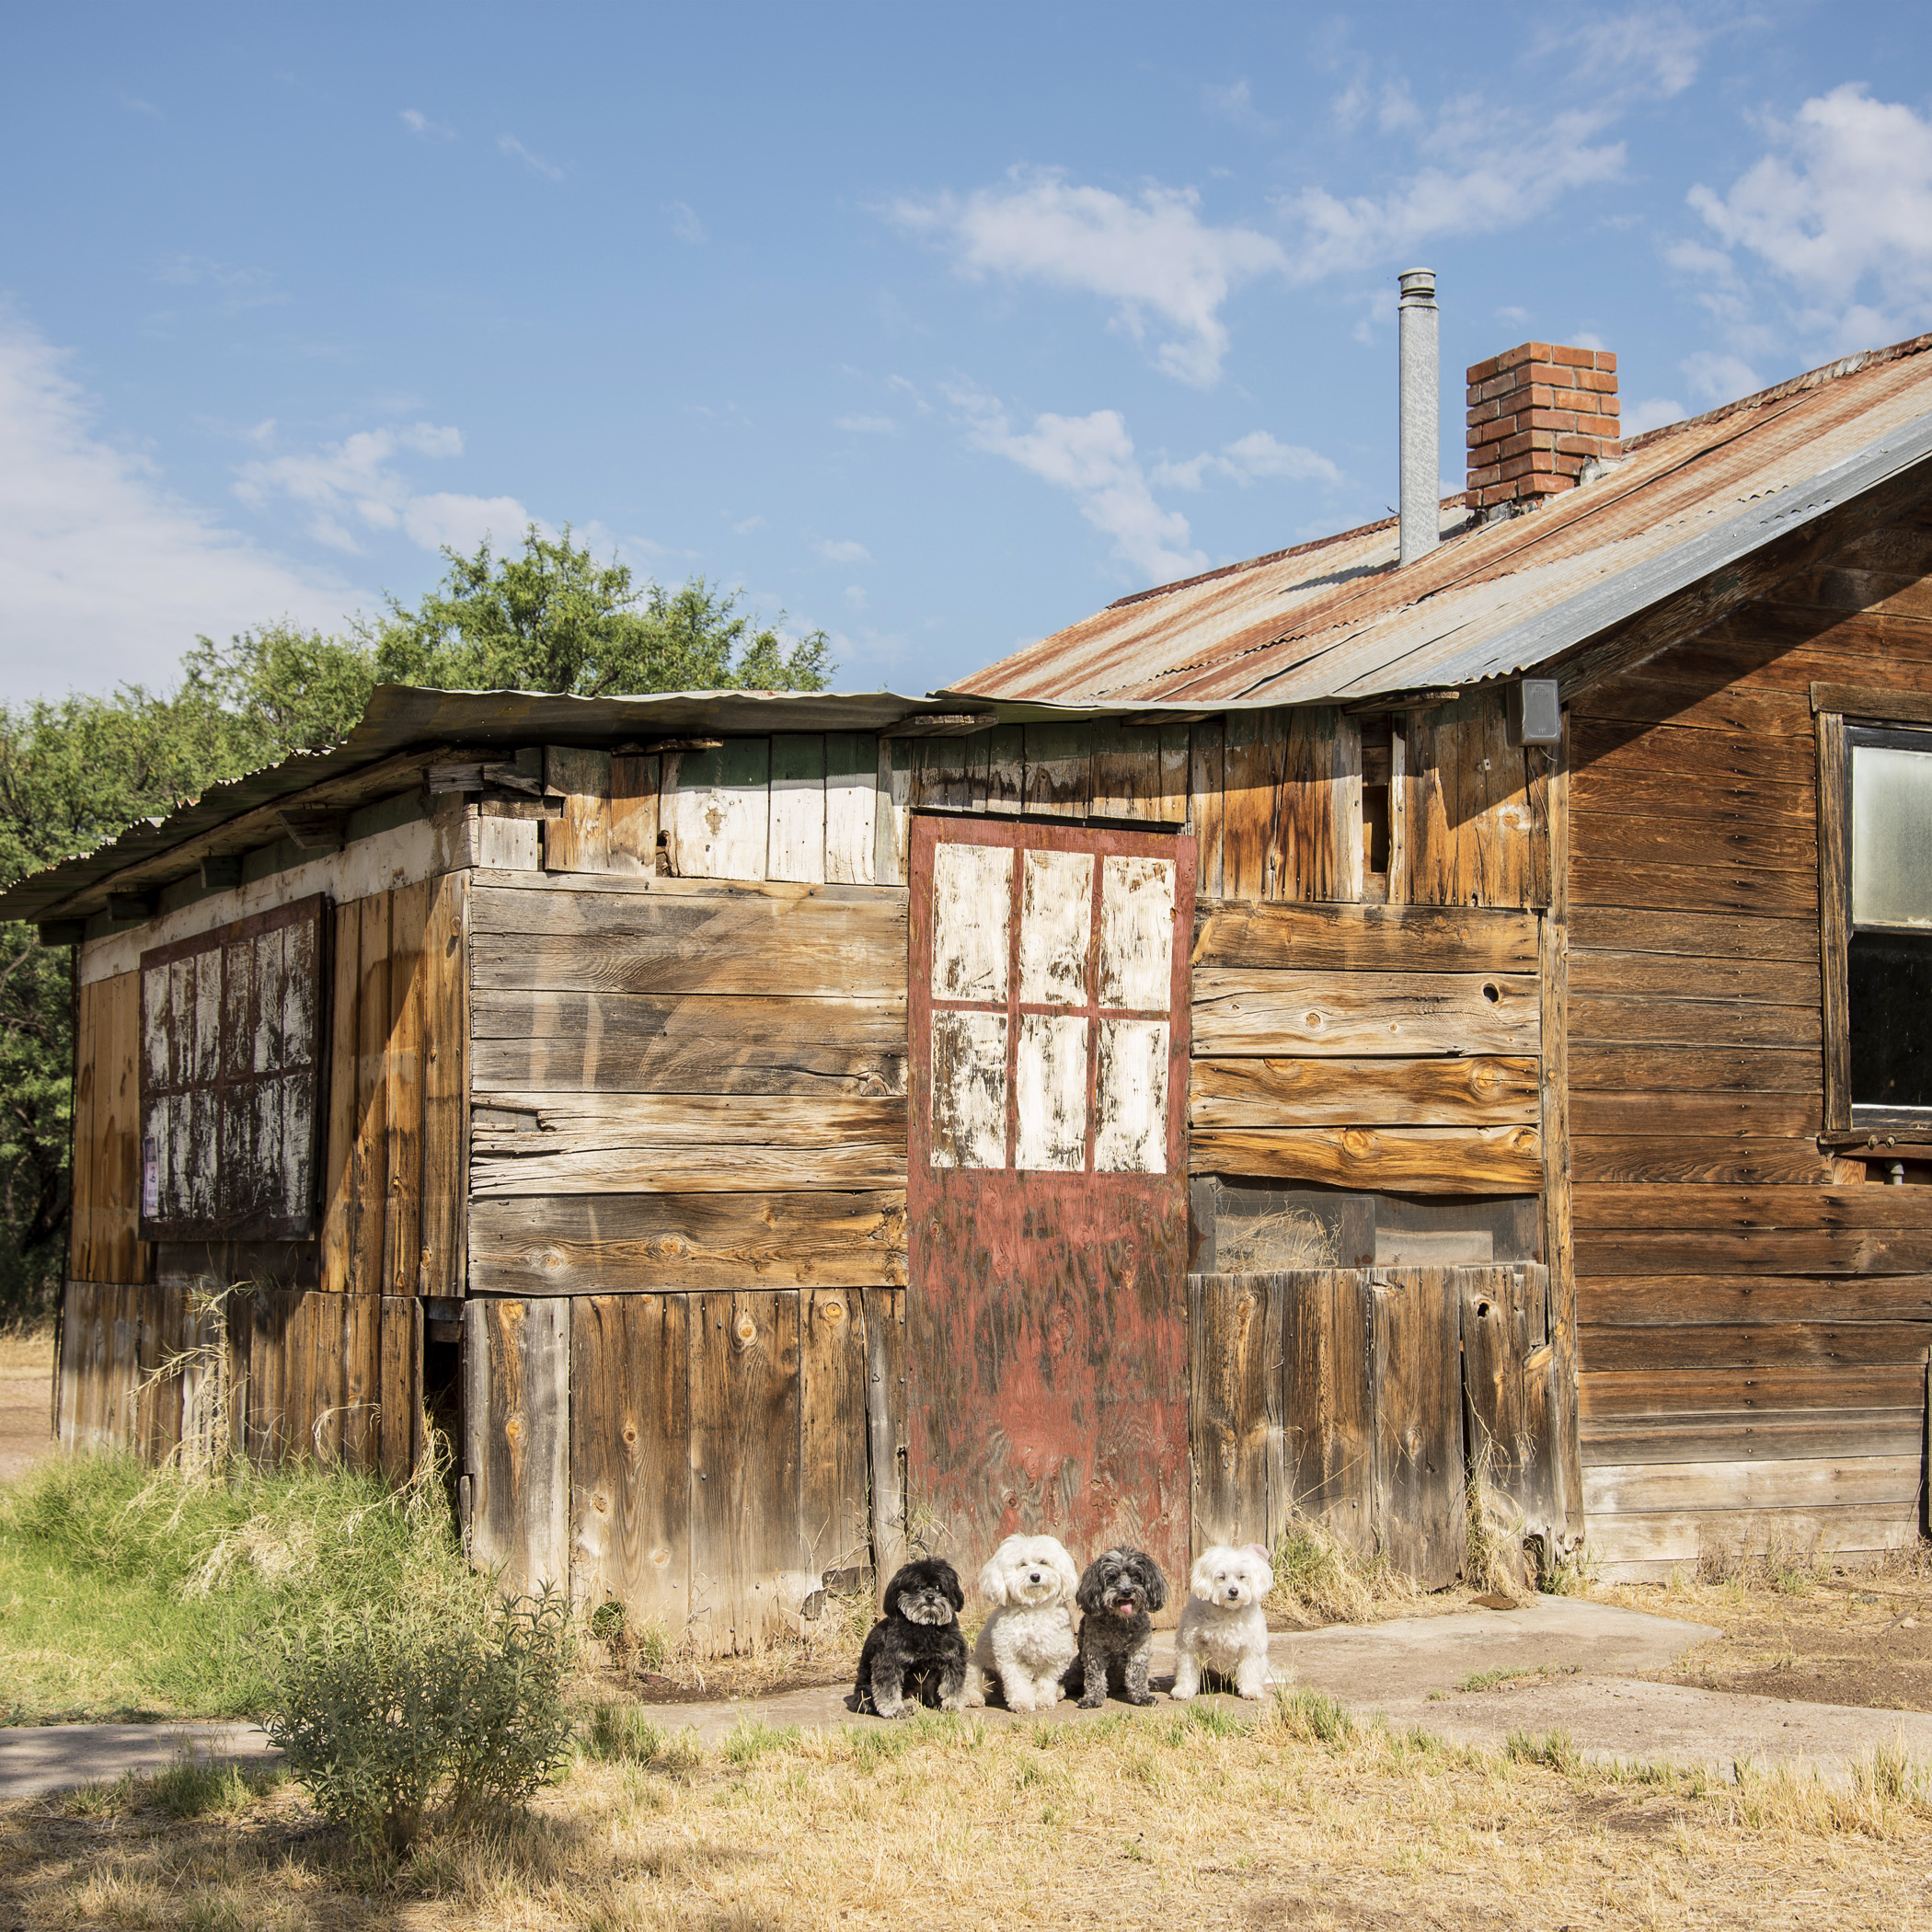 We made sure to check out the local ghost town and scare off any lingering spirits.